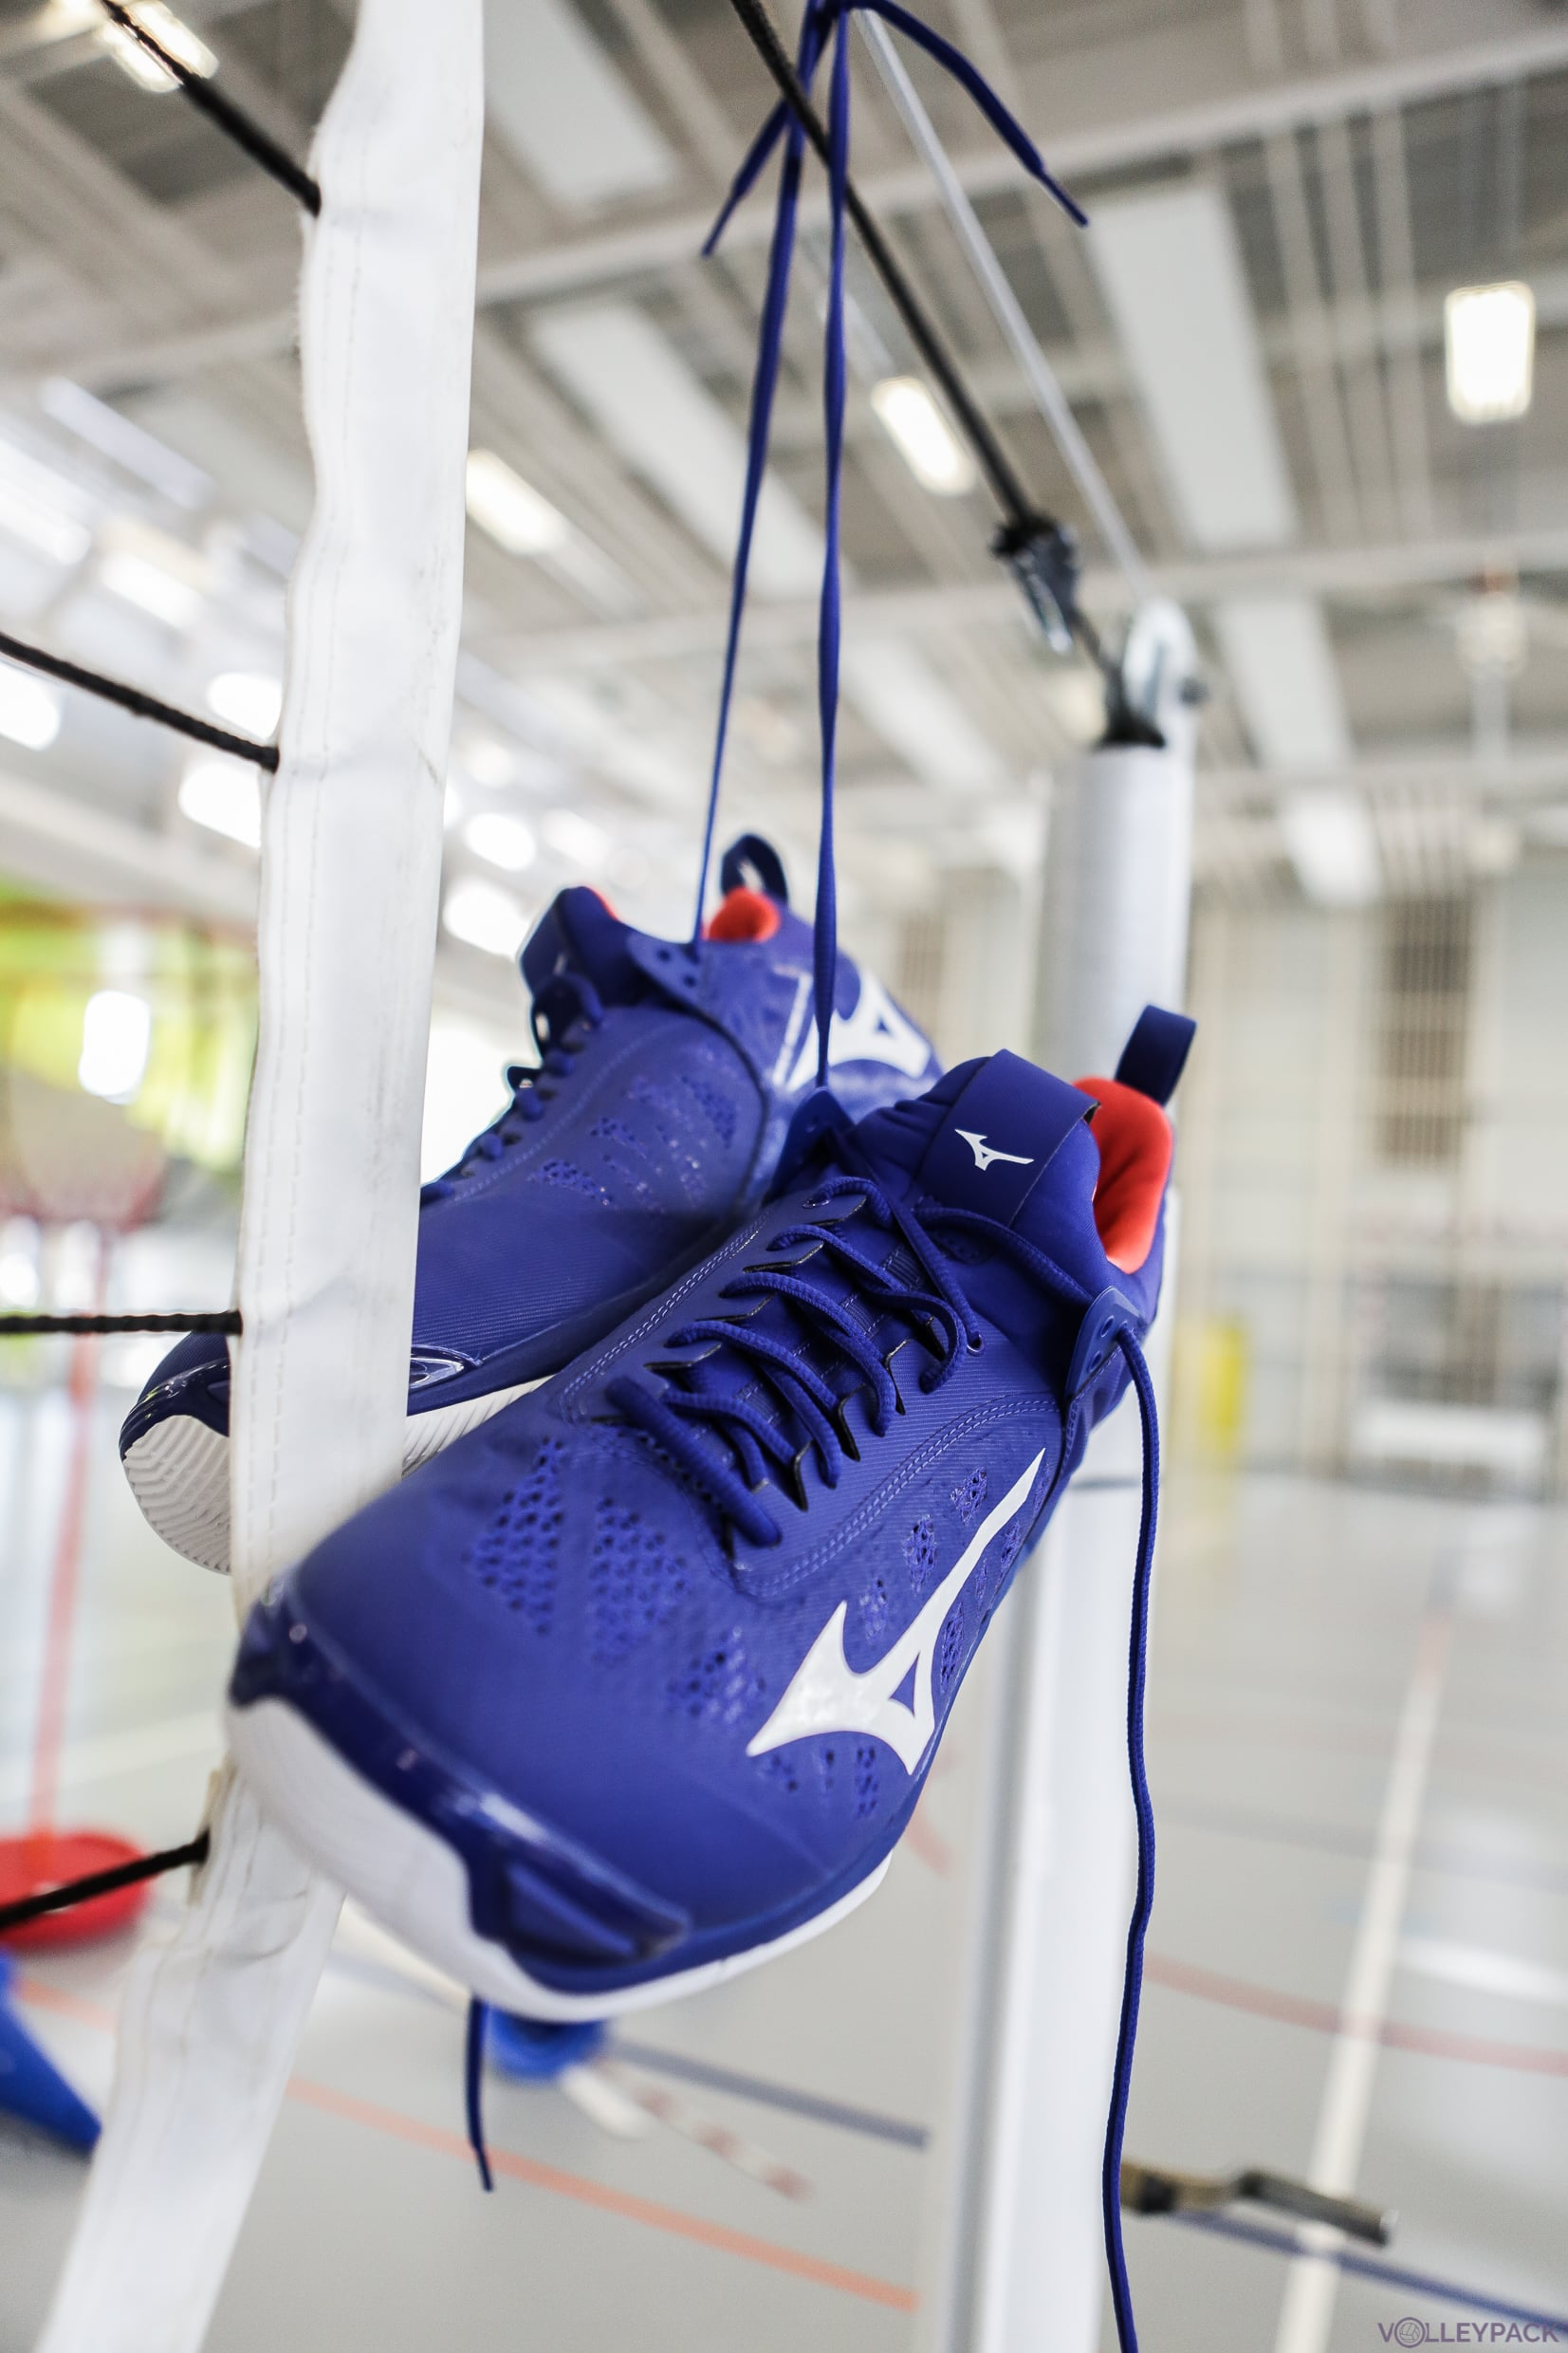 test-mizuno-wave-momentum-2019-volleypack-5